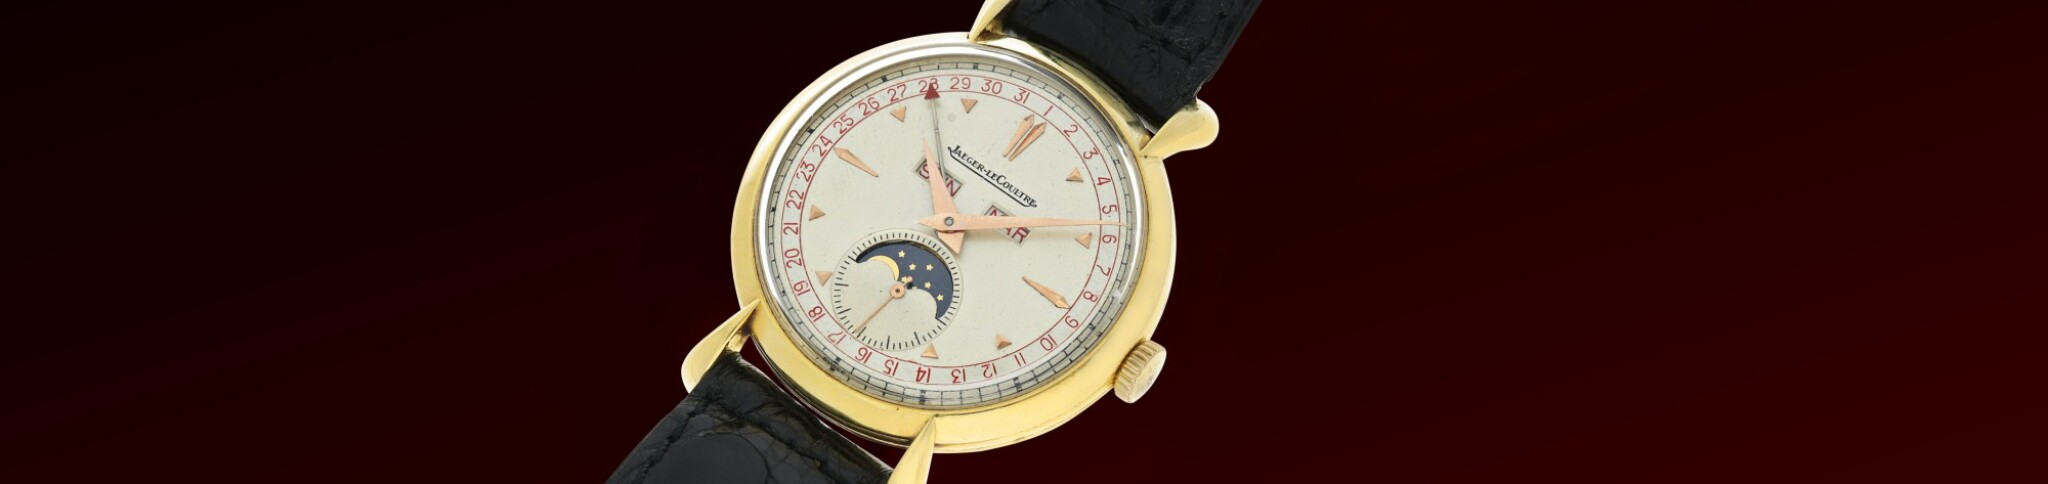 Weekly Watches | New York